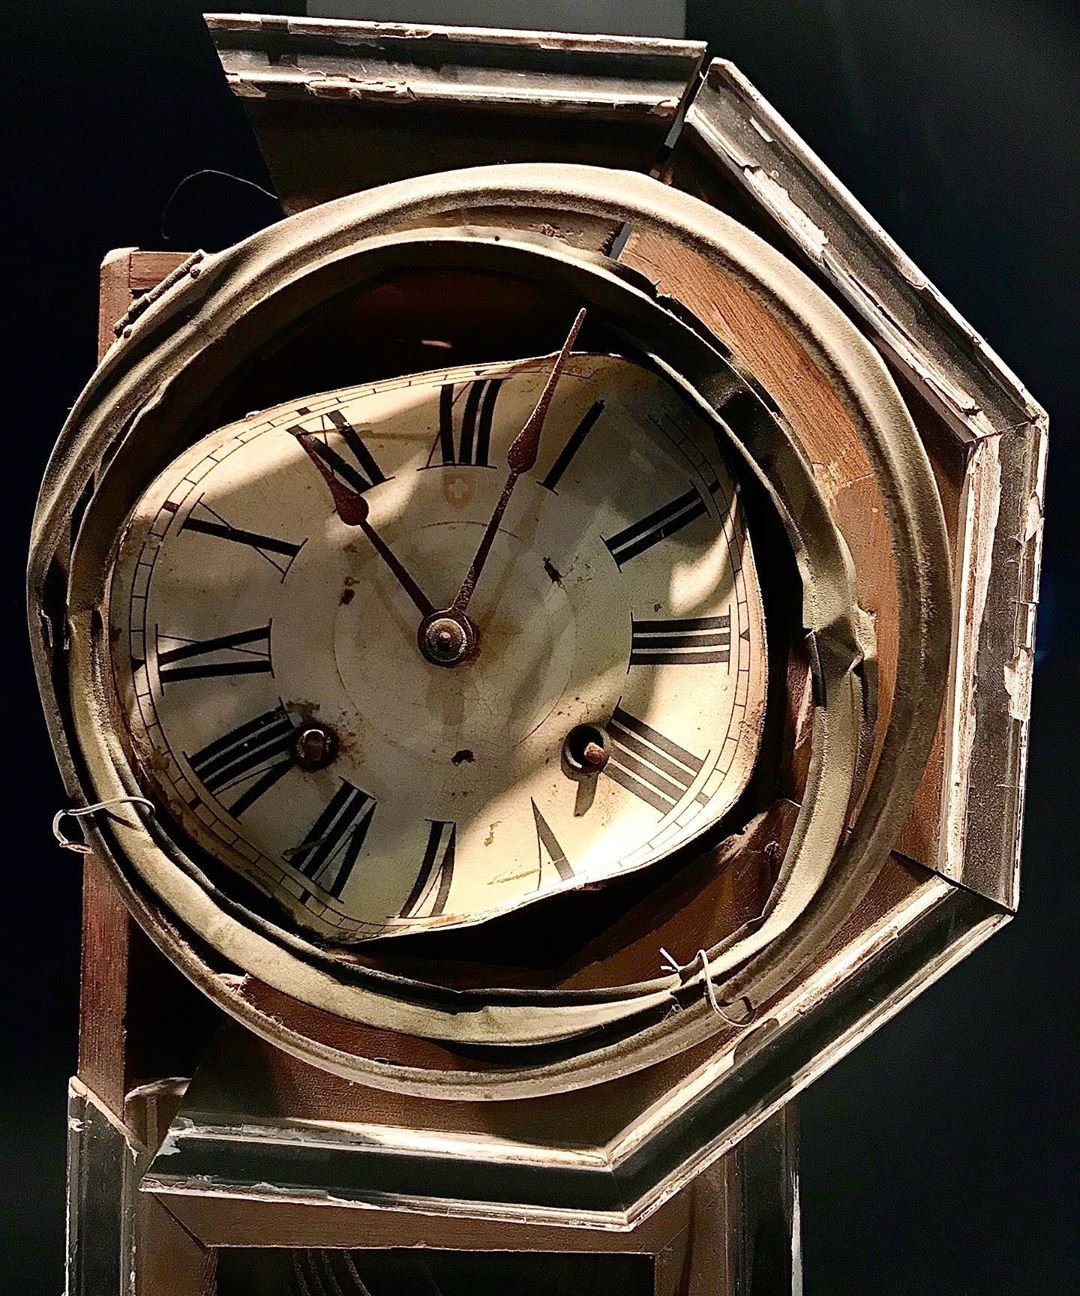 Moving visit at the #atomicbombmuseum Wall clock found about 800 meters from hypocenter Shattered by the blast Its hands stopped at 11:02 the moment of the explosion